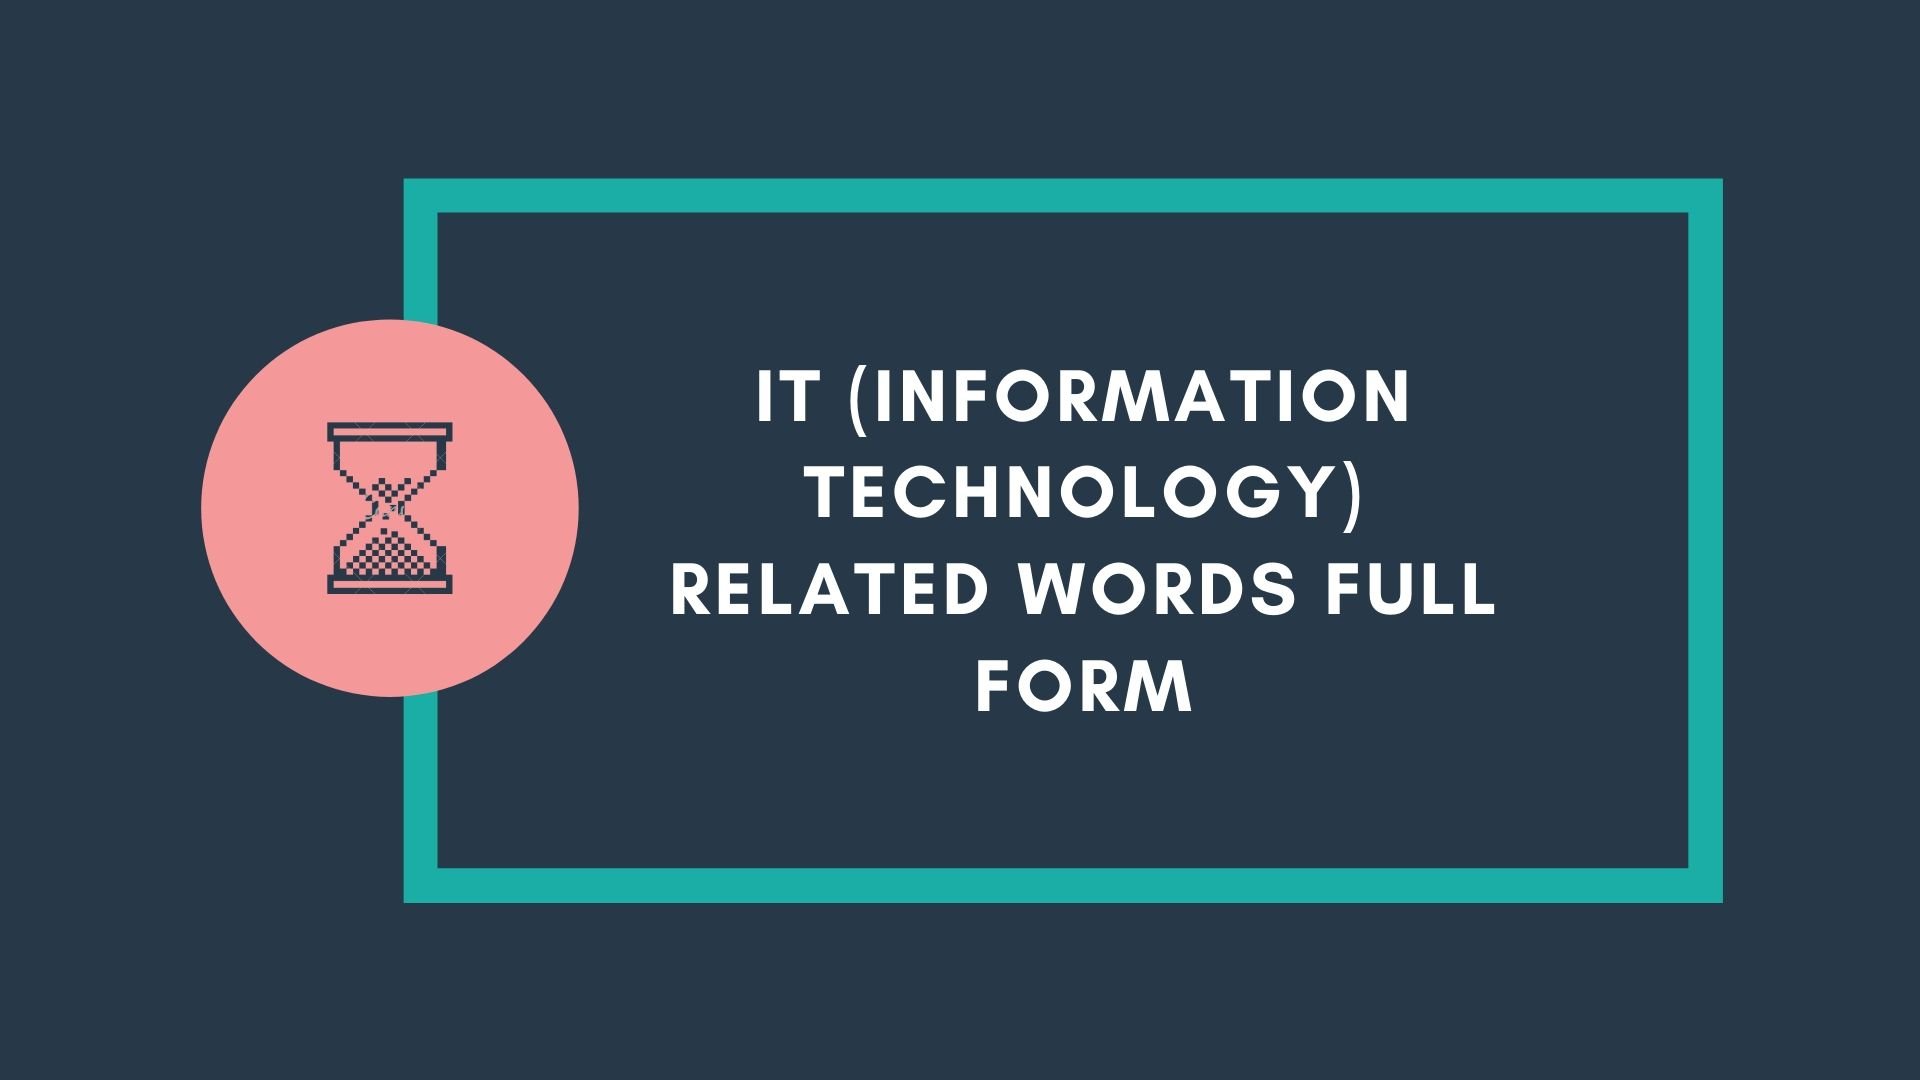 IT (Information Technology) Related Words Full Form